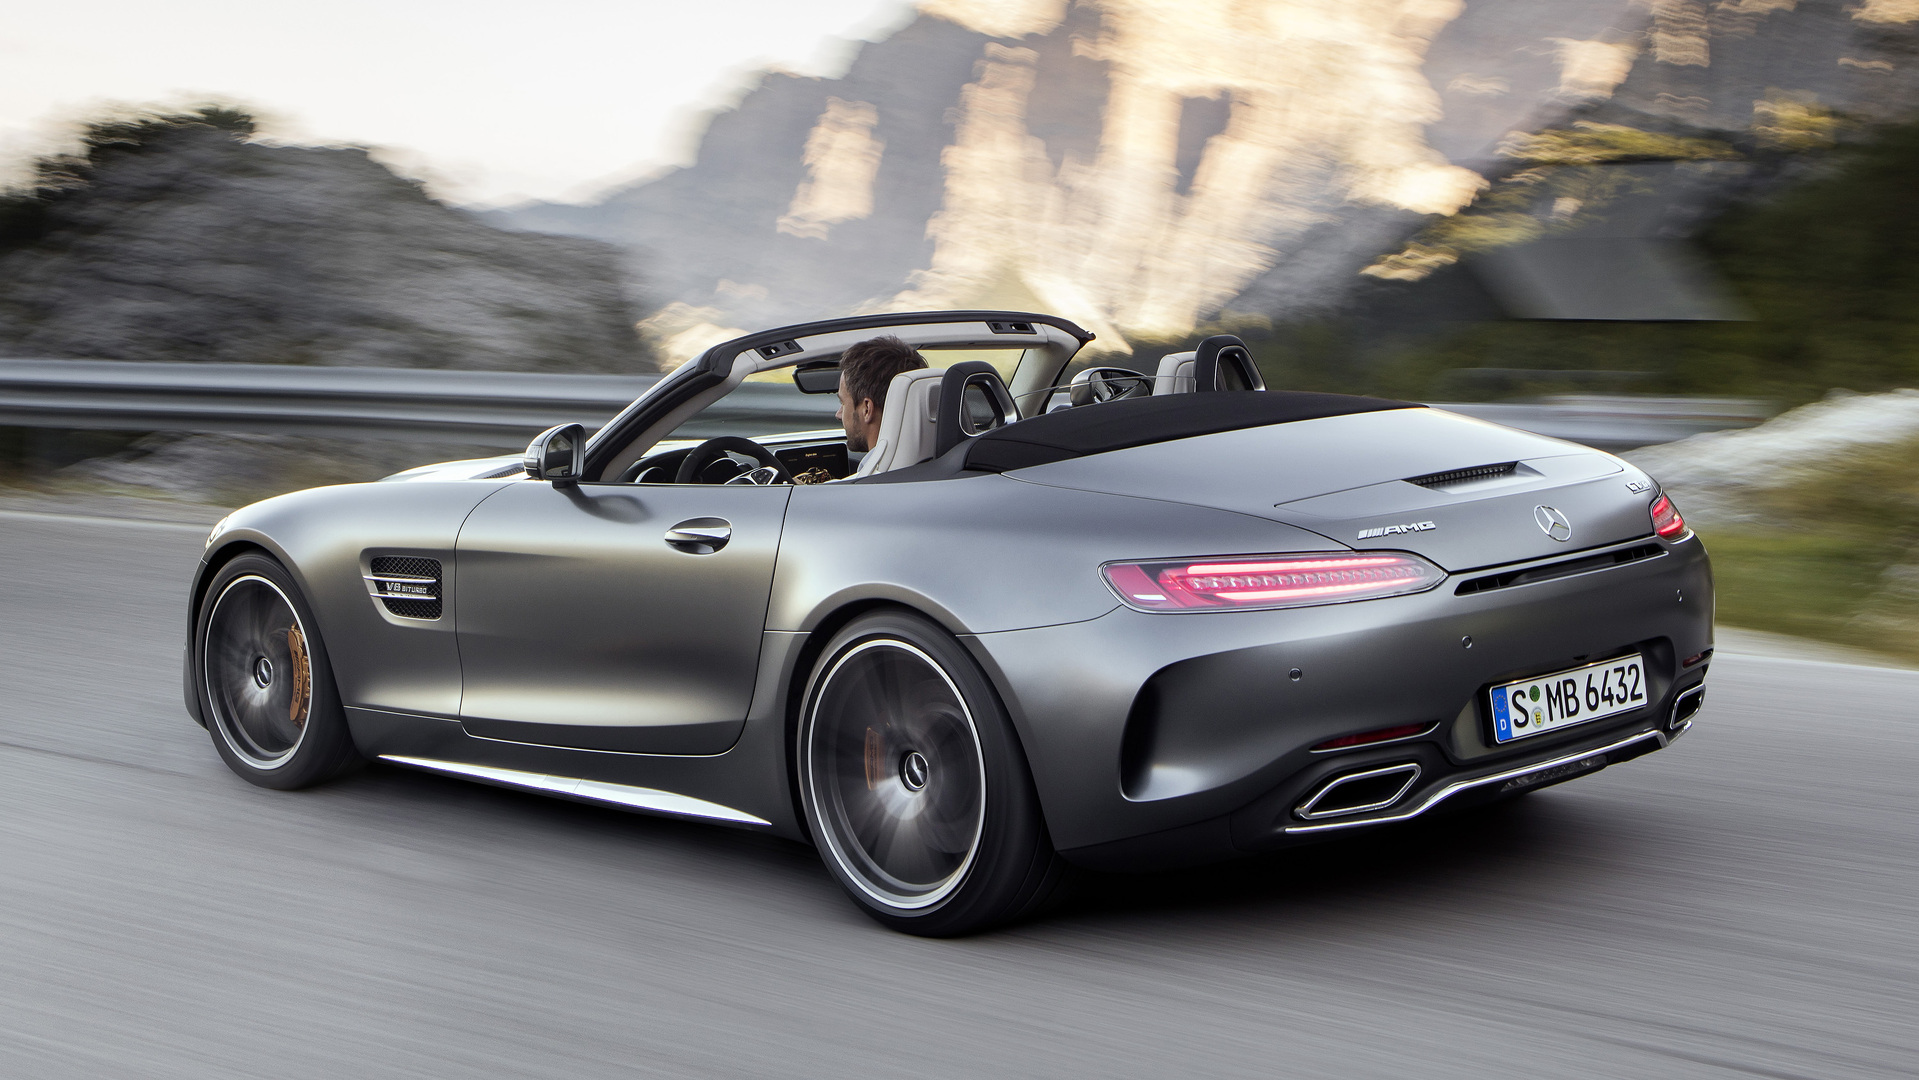 Used Mercedes For Sale >> Mercedes-Benz AMG GT Roadster News and Reviews | Motor1.com